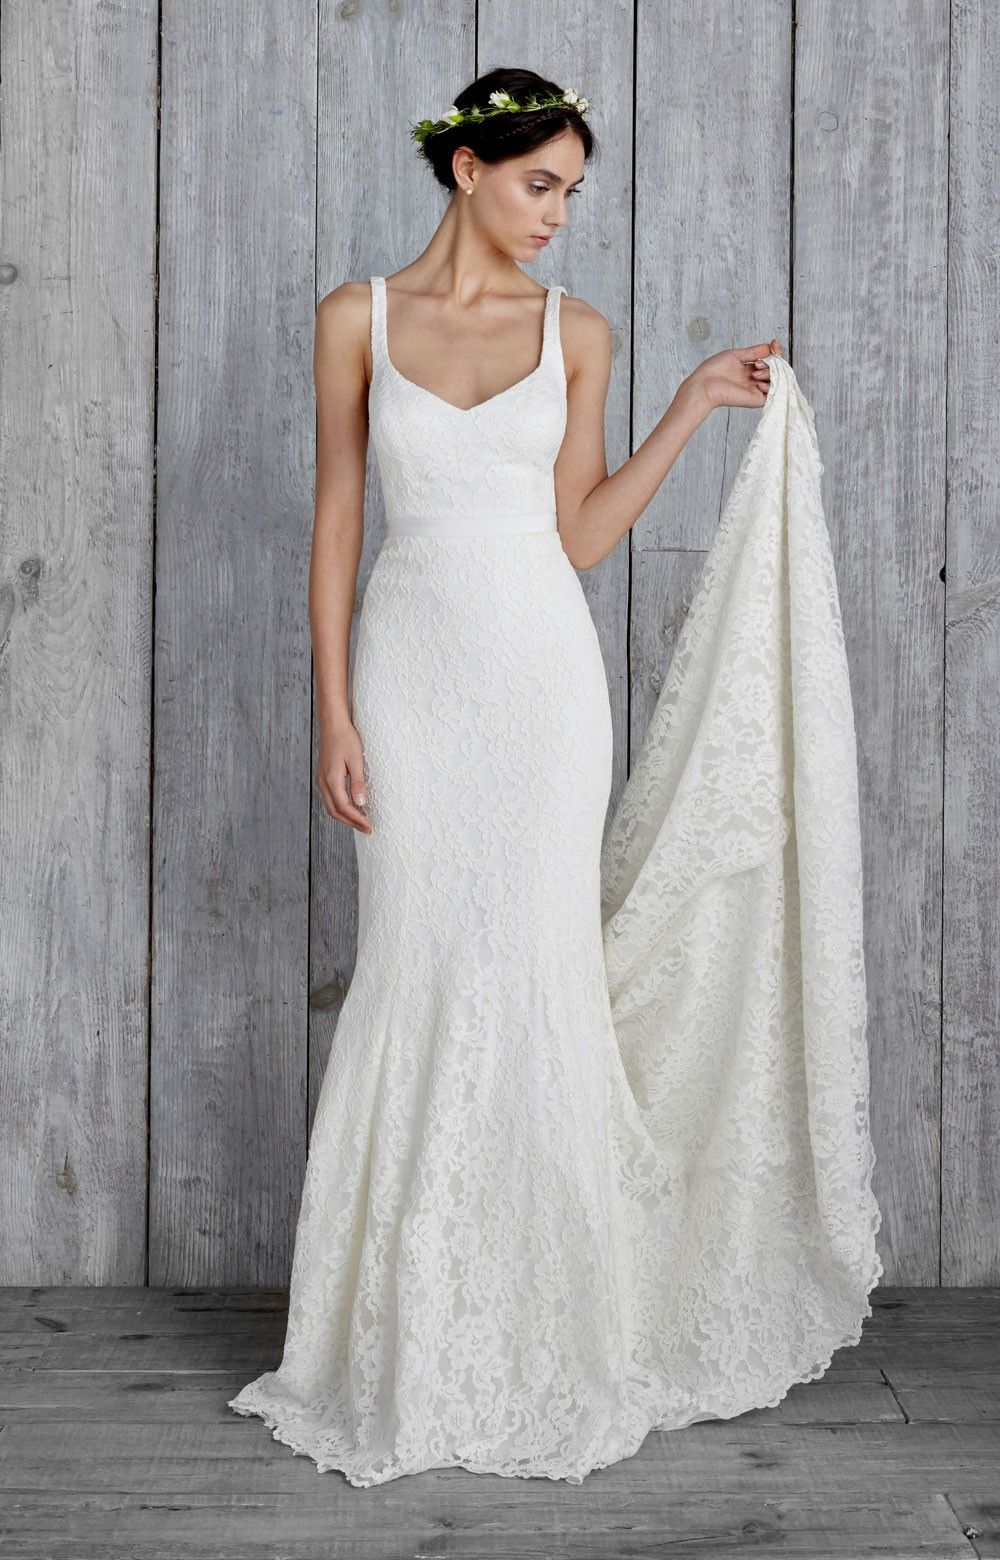 2019 Used Wedding Dresses Cleveland Ohio - How to Dress for A ...